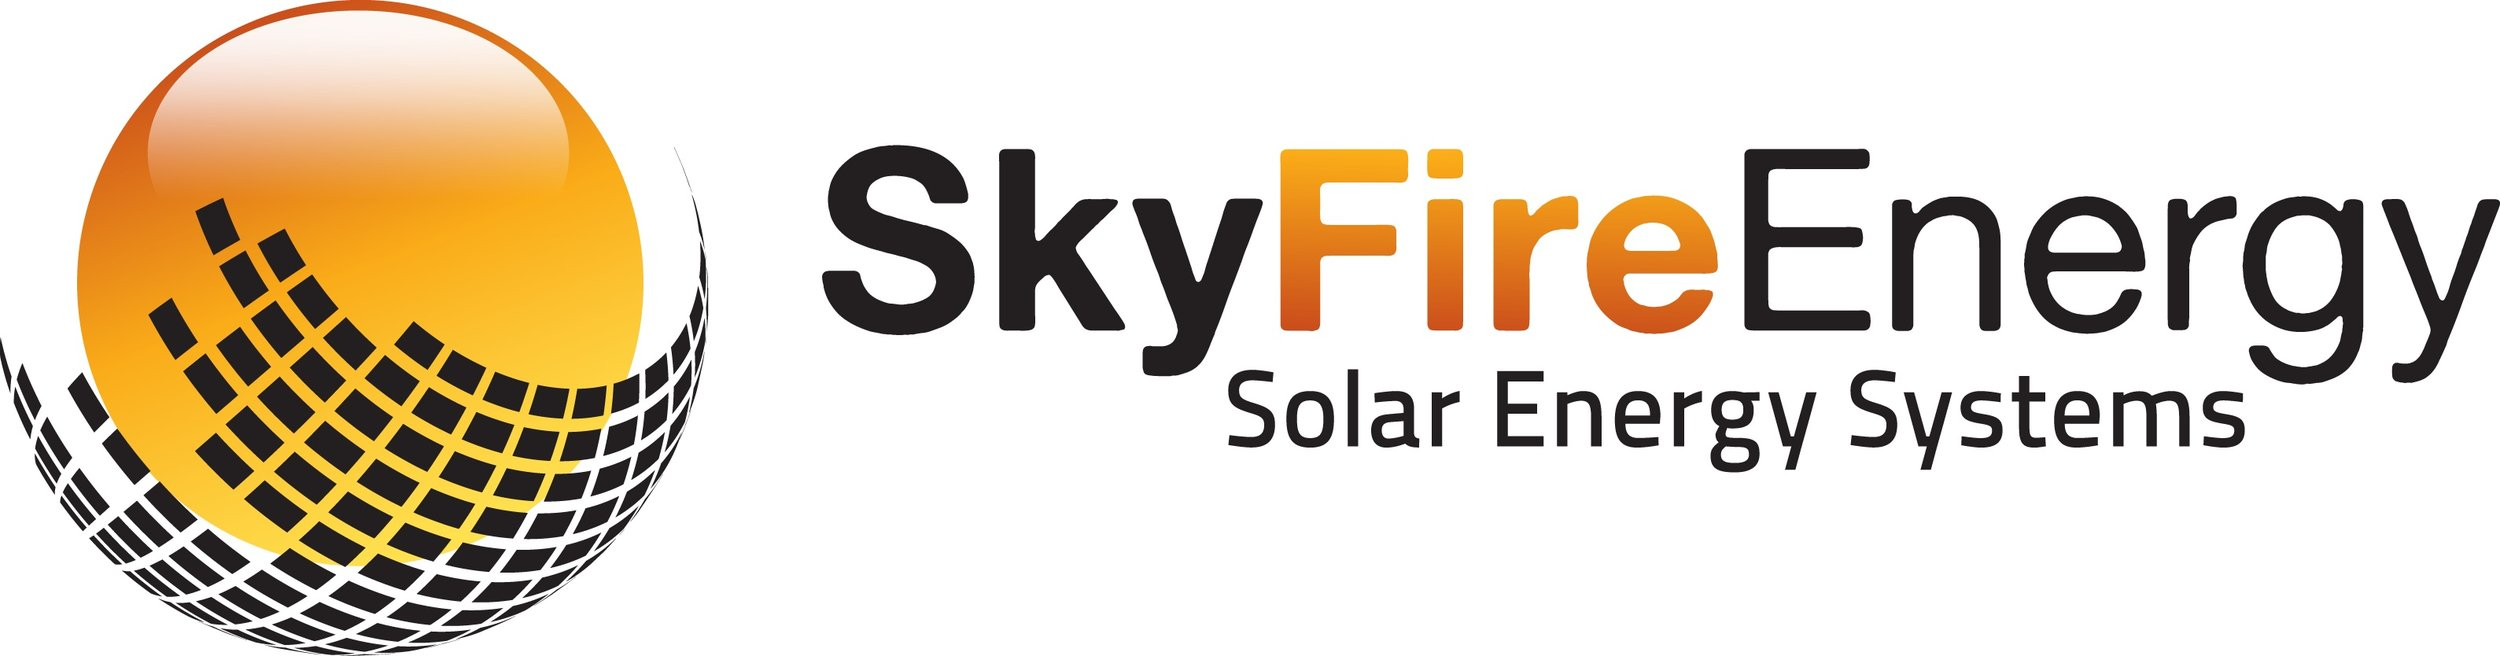 SkyFire Energy is Western Canada's leading solar EPC (Engineering, Procurement and Construction) firm. Since 2001, SkyFire Energy has designed and installed grid connected and off grid solar power systems throughout Alberta, BC, Saskatchewan, Manitoba, Ontario, Northwest Territories and the Yukon. Their experience includes the design and installation of hundreds of residential systems as well as many of the largest and most complex commercial photovoltaic systems in Western Canada. SkyFire Energy's team consists of professional engineers, certified photovoltaic technicians & CSA certified construction electricians (Solar PV Systems Certified). More information about SkyFire Energy can be found here:  http://www.skyfireenergy.com/